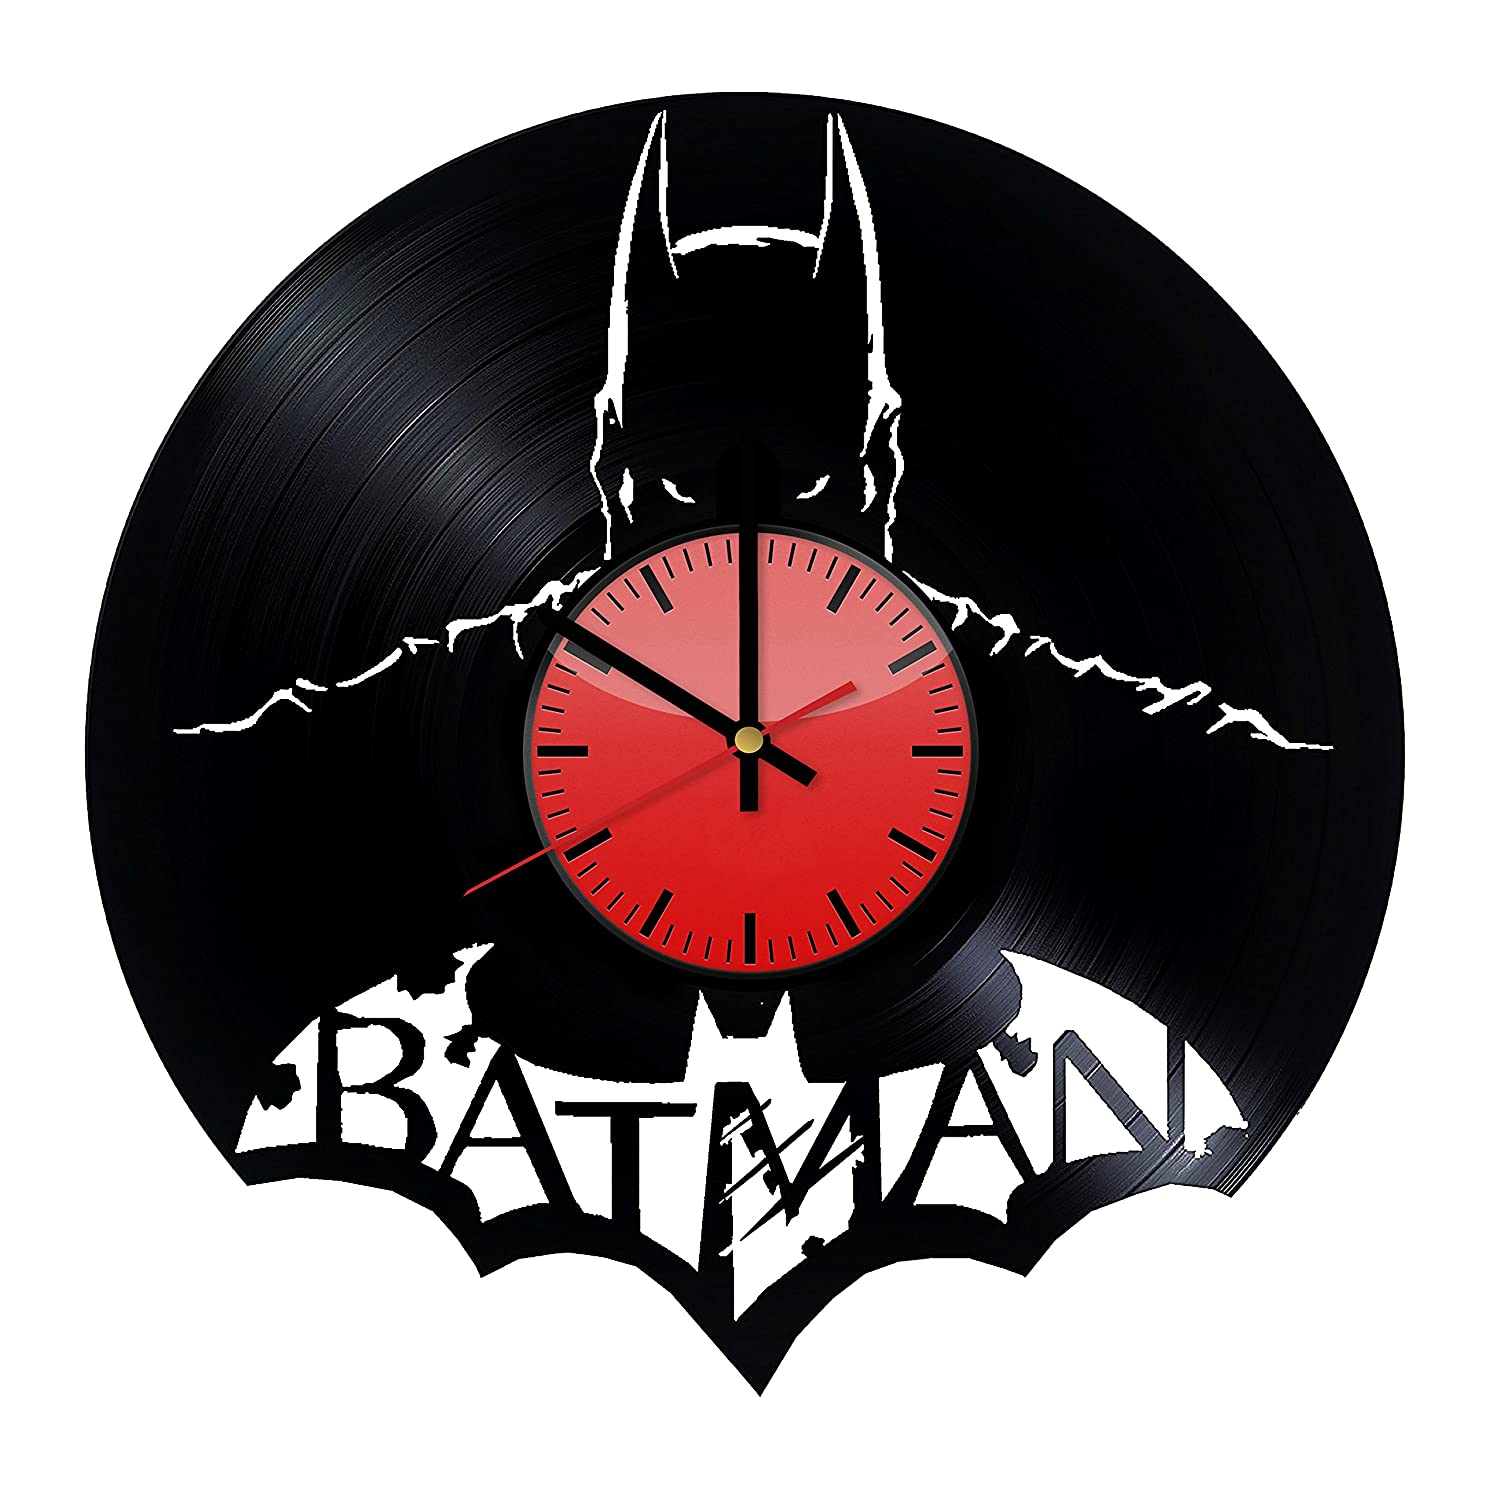 Amazon.com: Batman American DC Comics Art Decor Vinyl Wall Clock - Original Gift Idea for Him or Her - Cool Home Decor Wall Art: Home & Kitchen